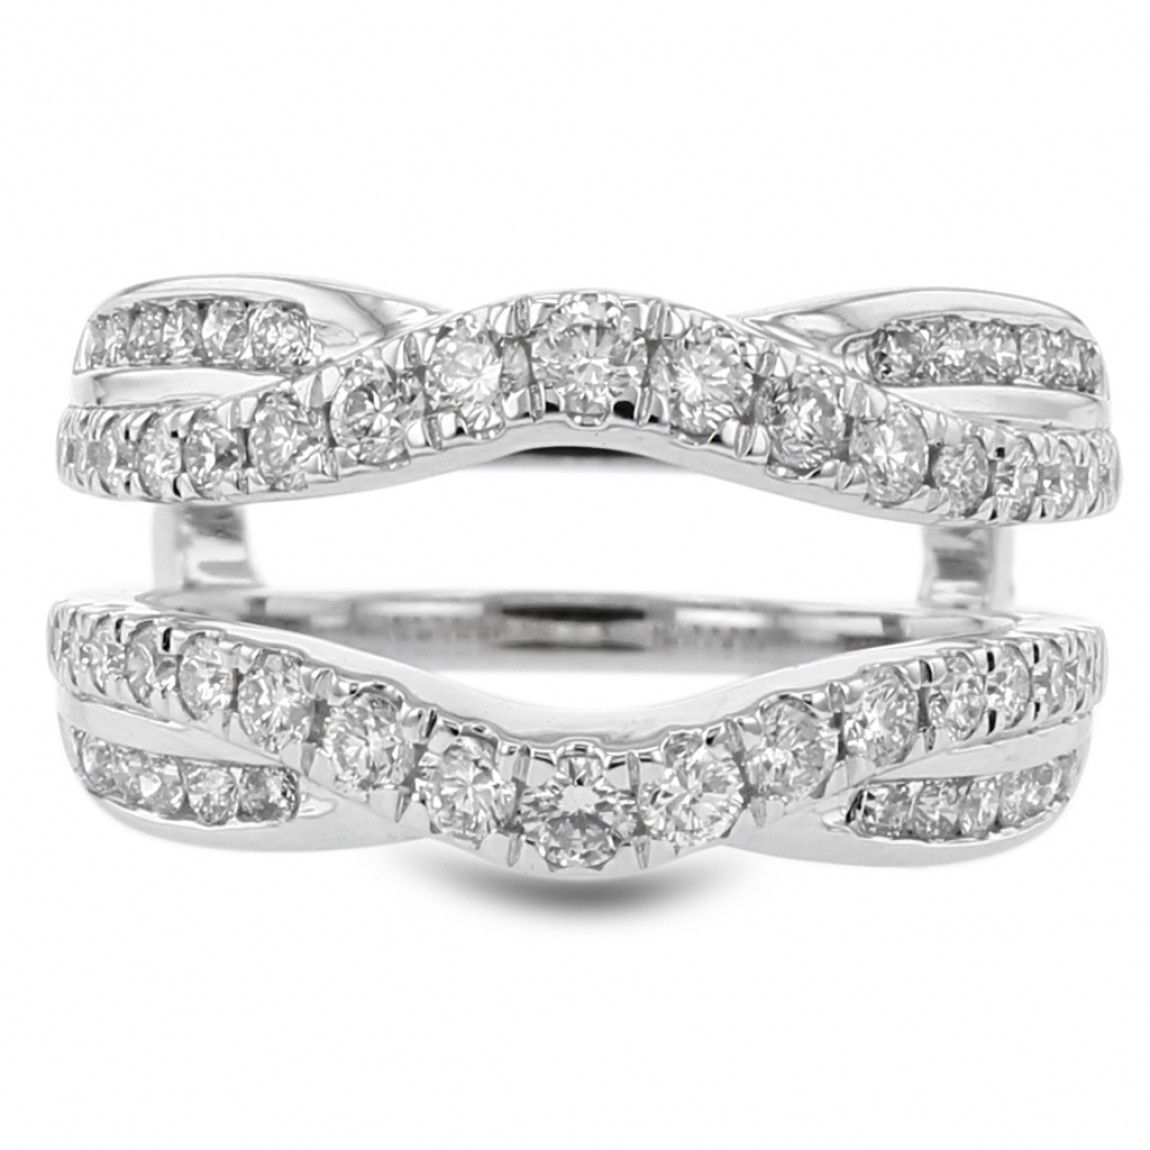 14K White Gold Curved Diamond Pave Cradle Wedding Band